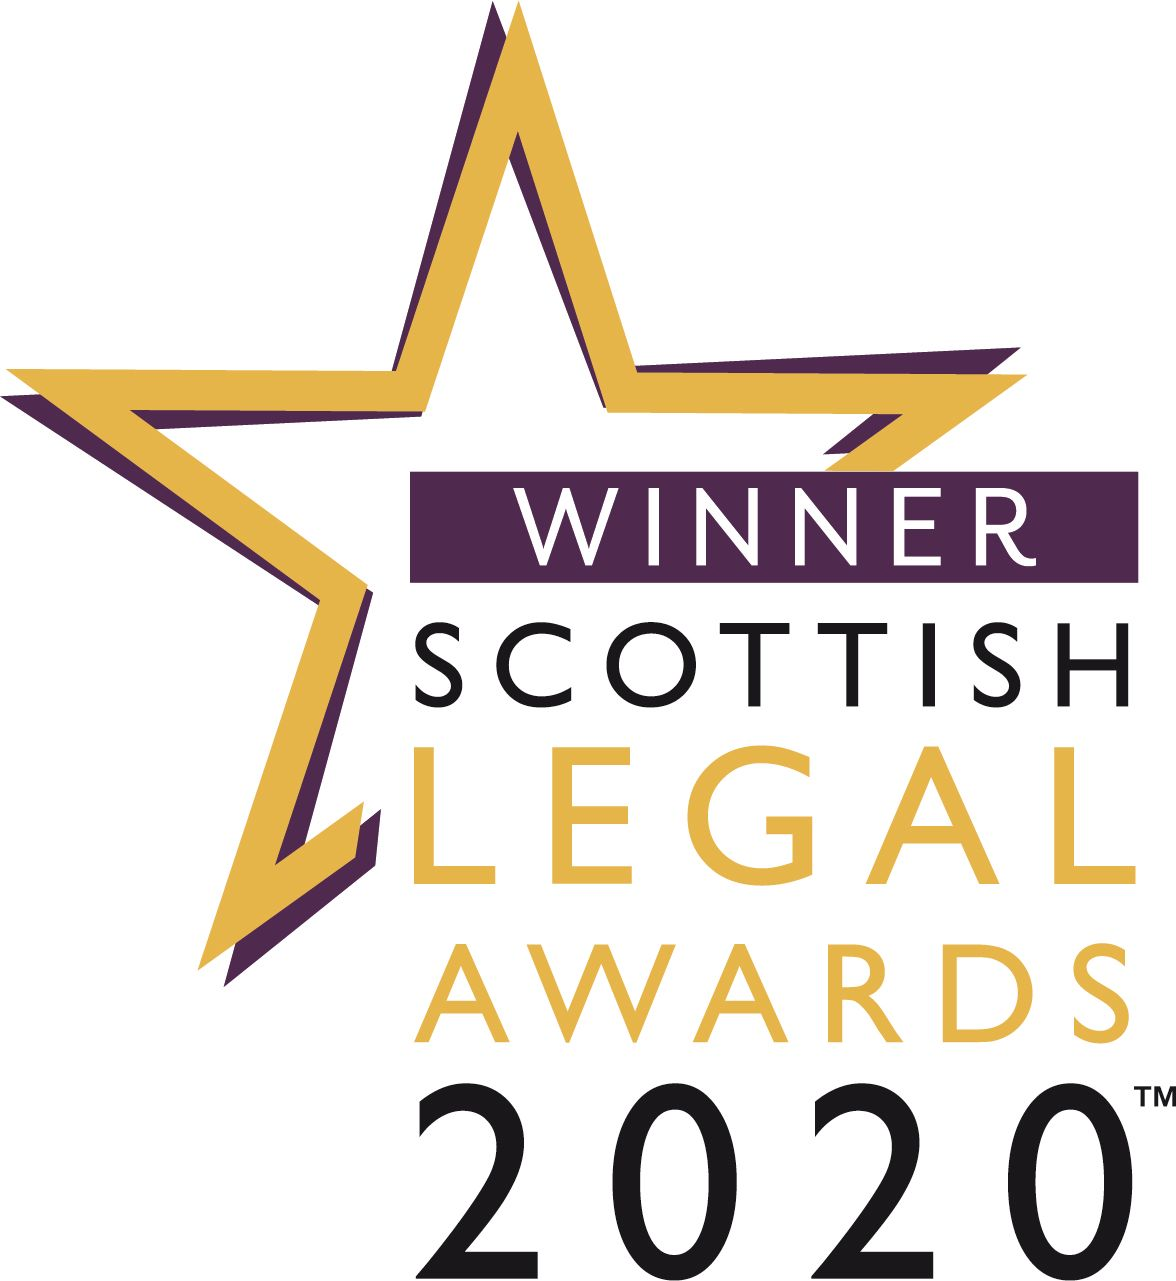 Scottish Legal Awards 2020 winners